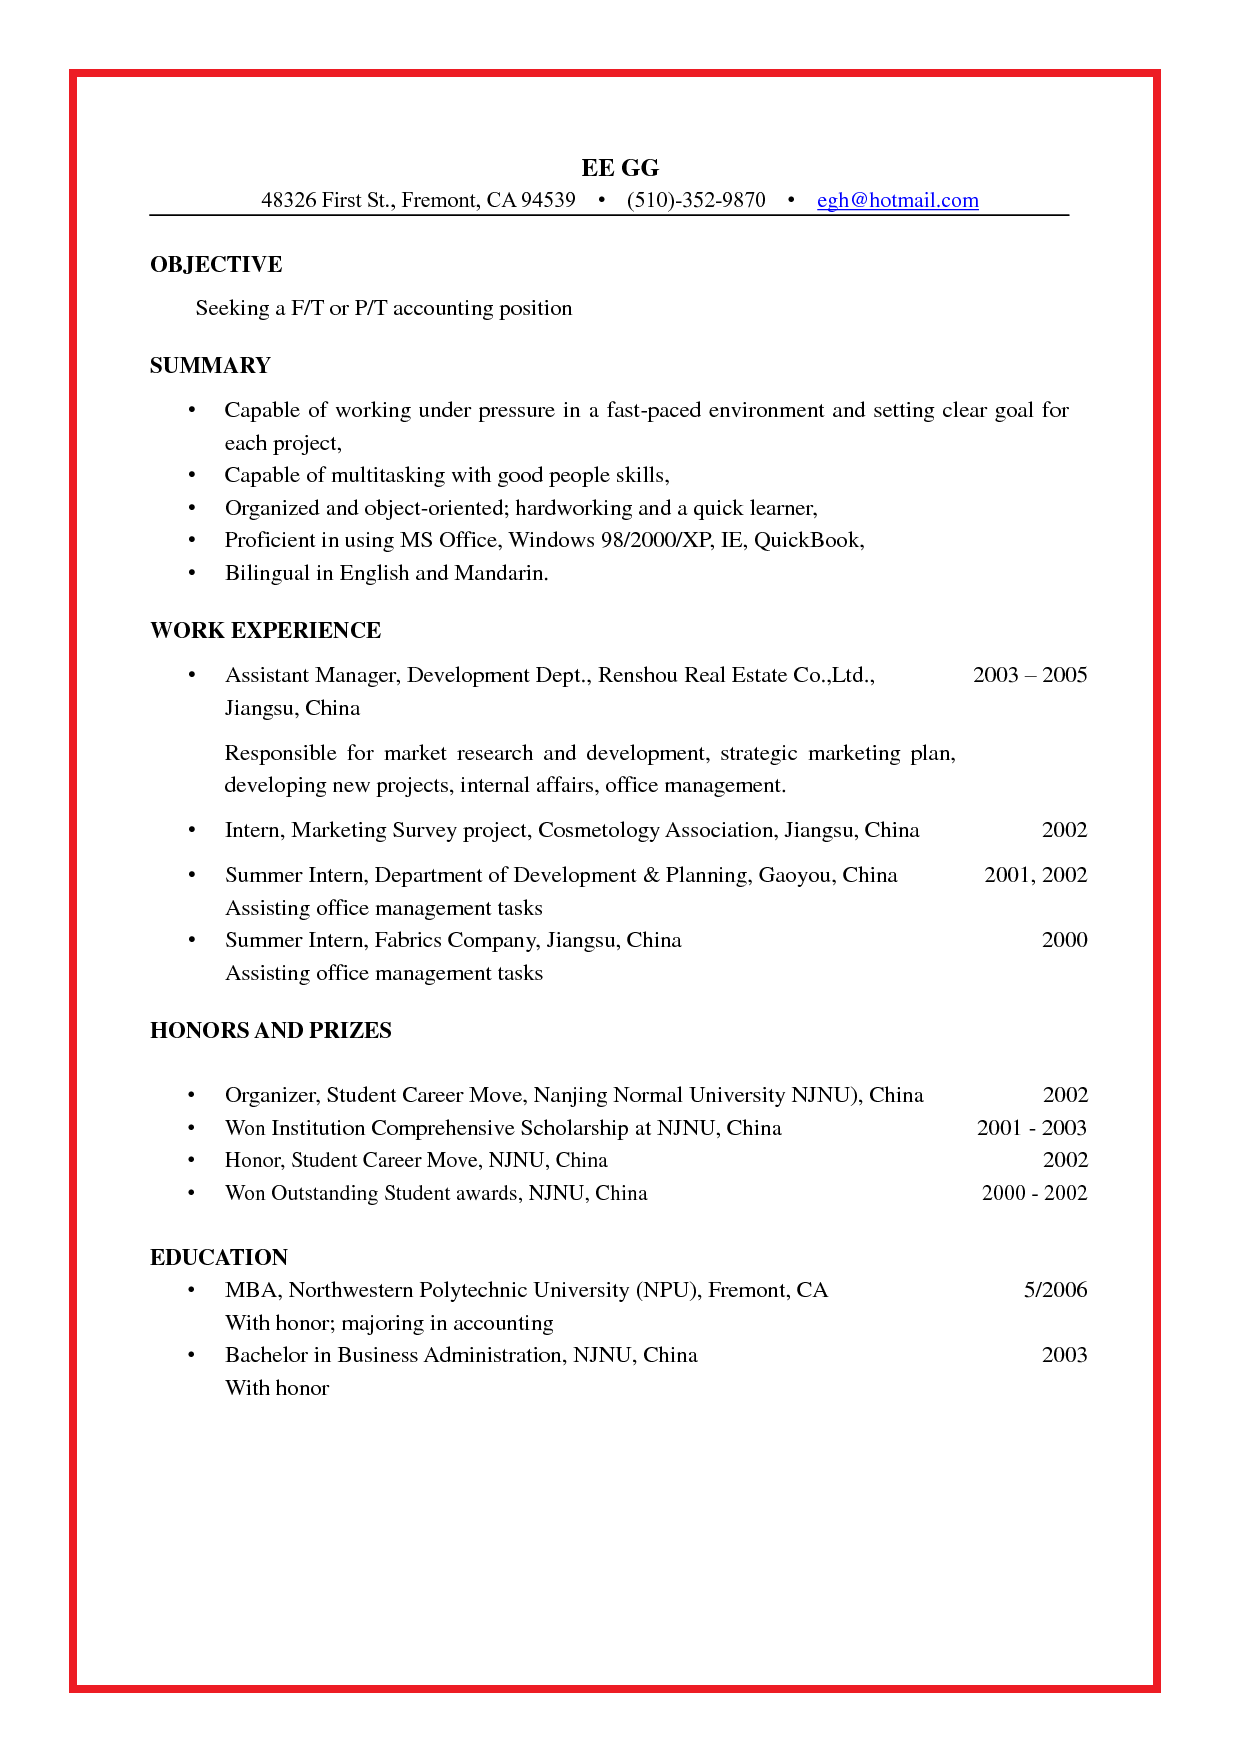 Format For Job Resume Fascinating Resume Template For Cosmetologist  Httpwww.jobresume.website .